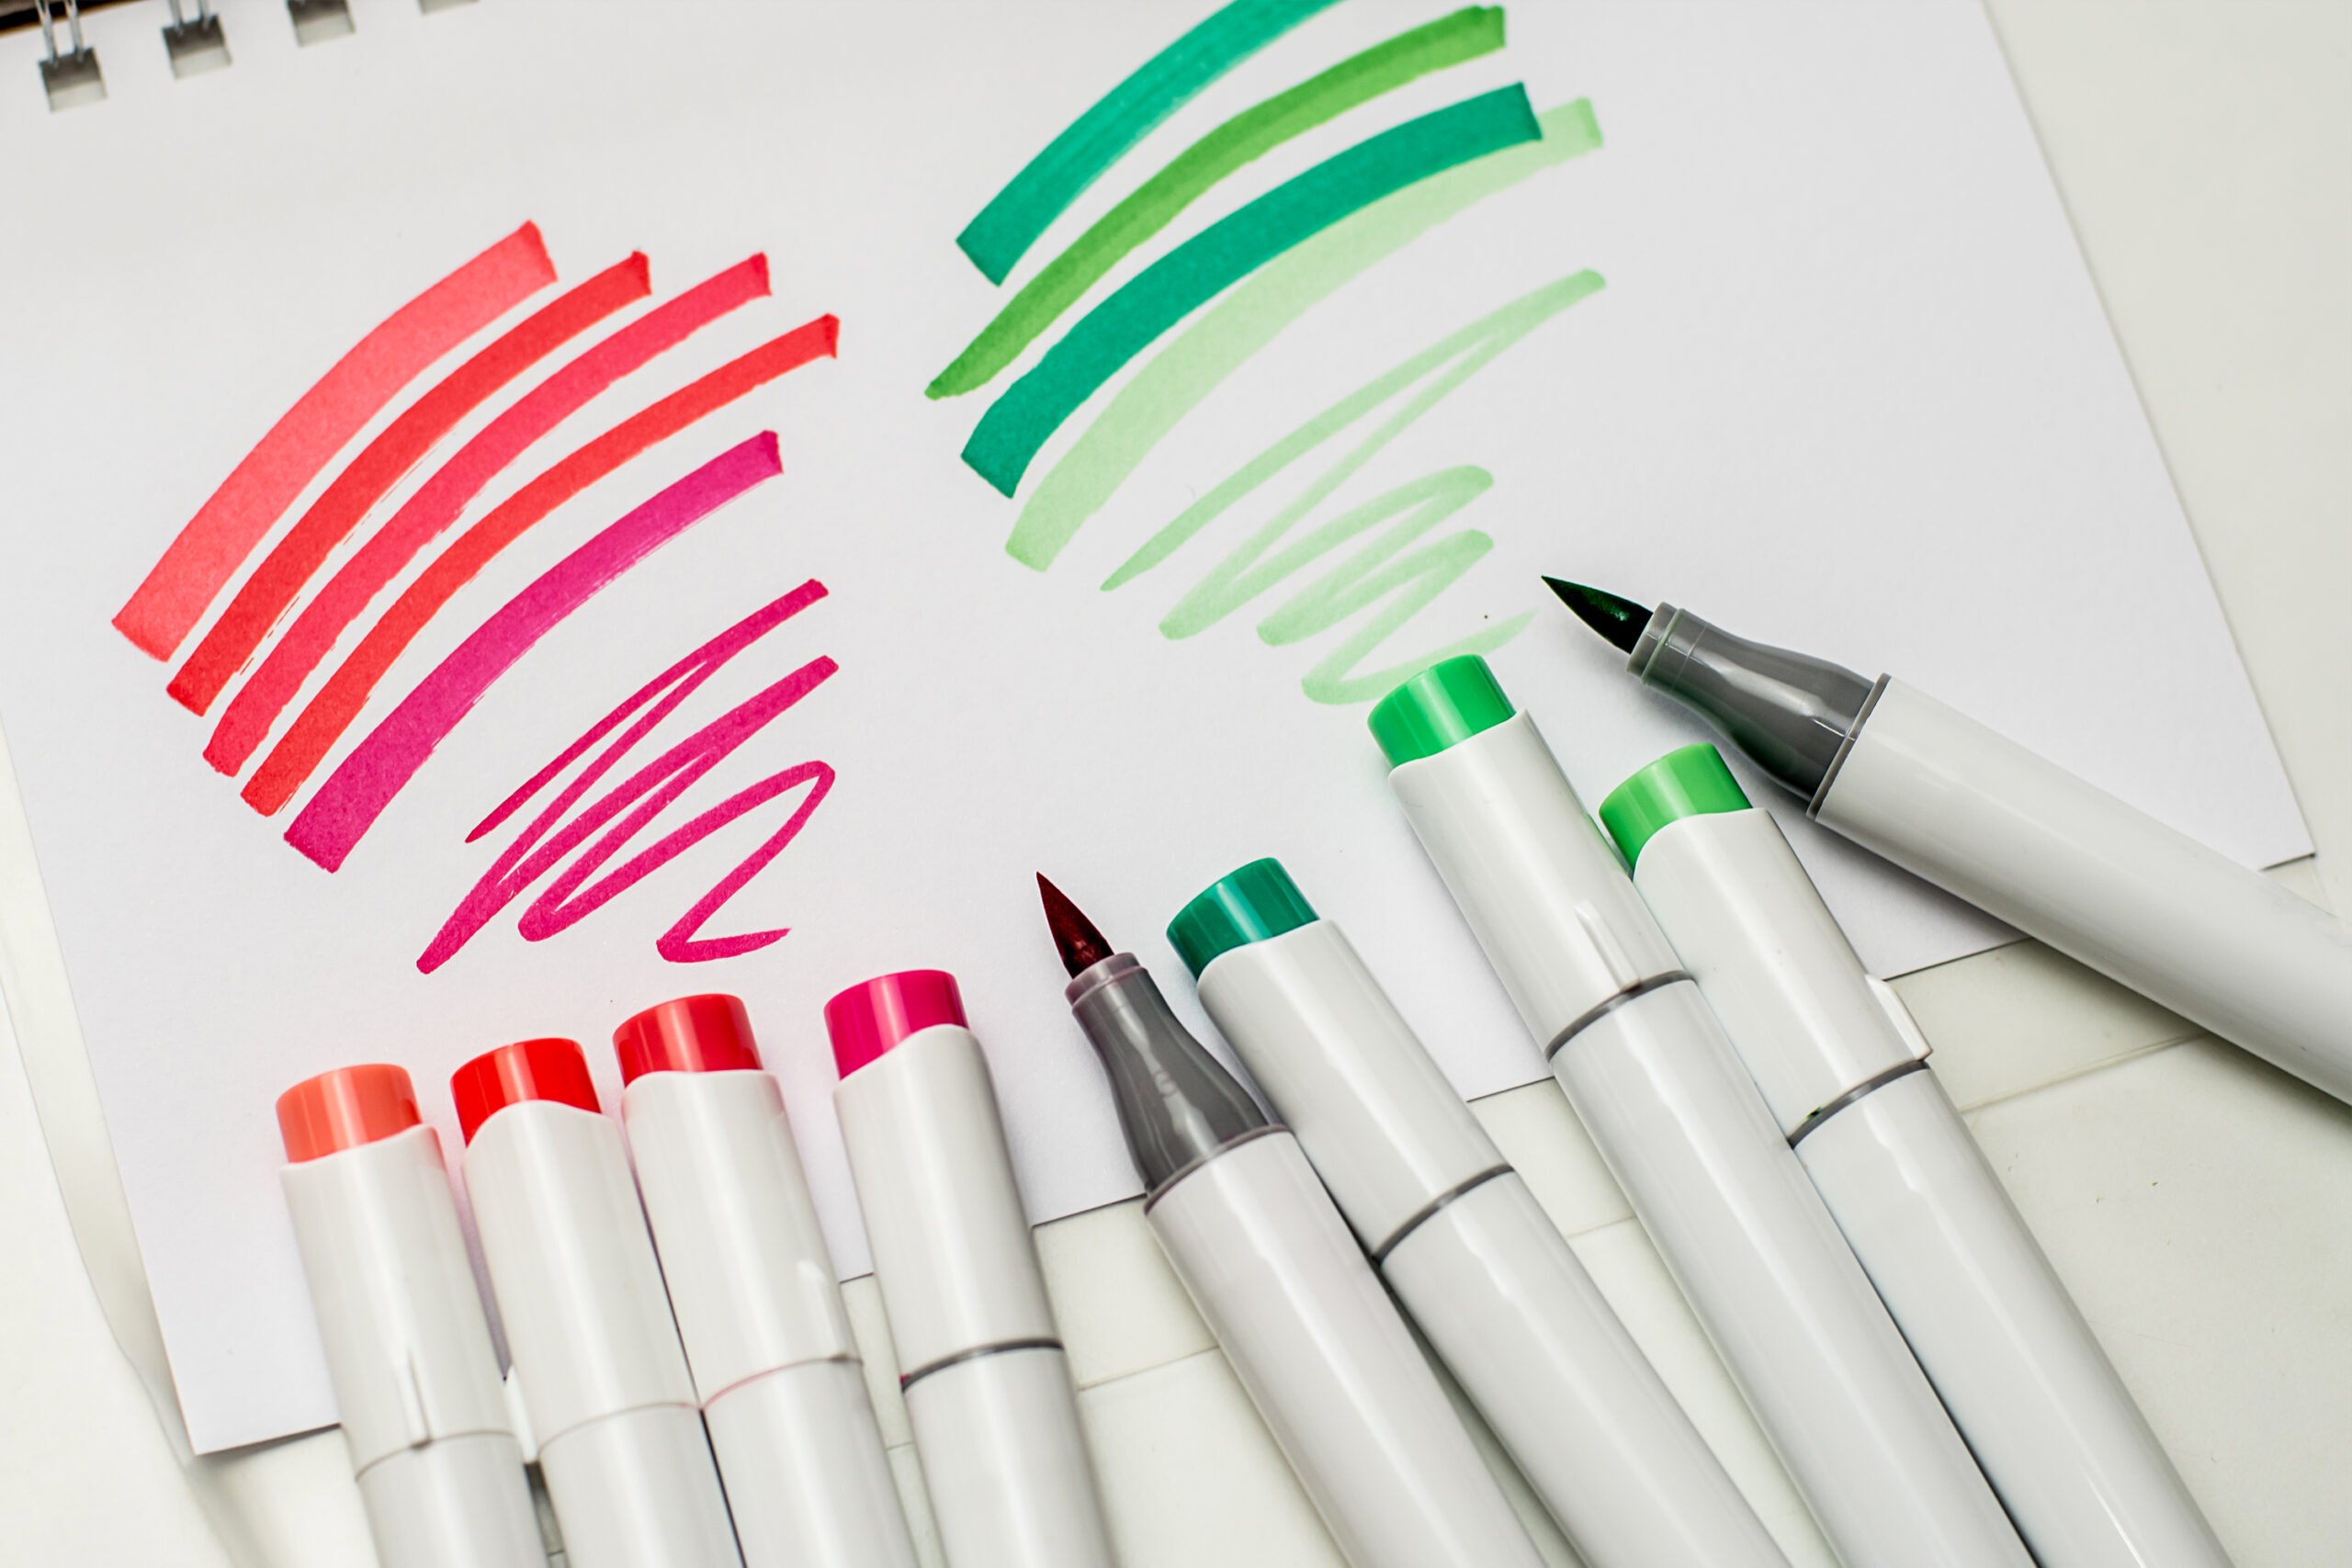 Best Alcohol-Based Markers For Painting and Sketching